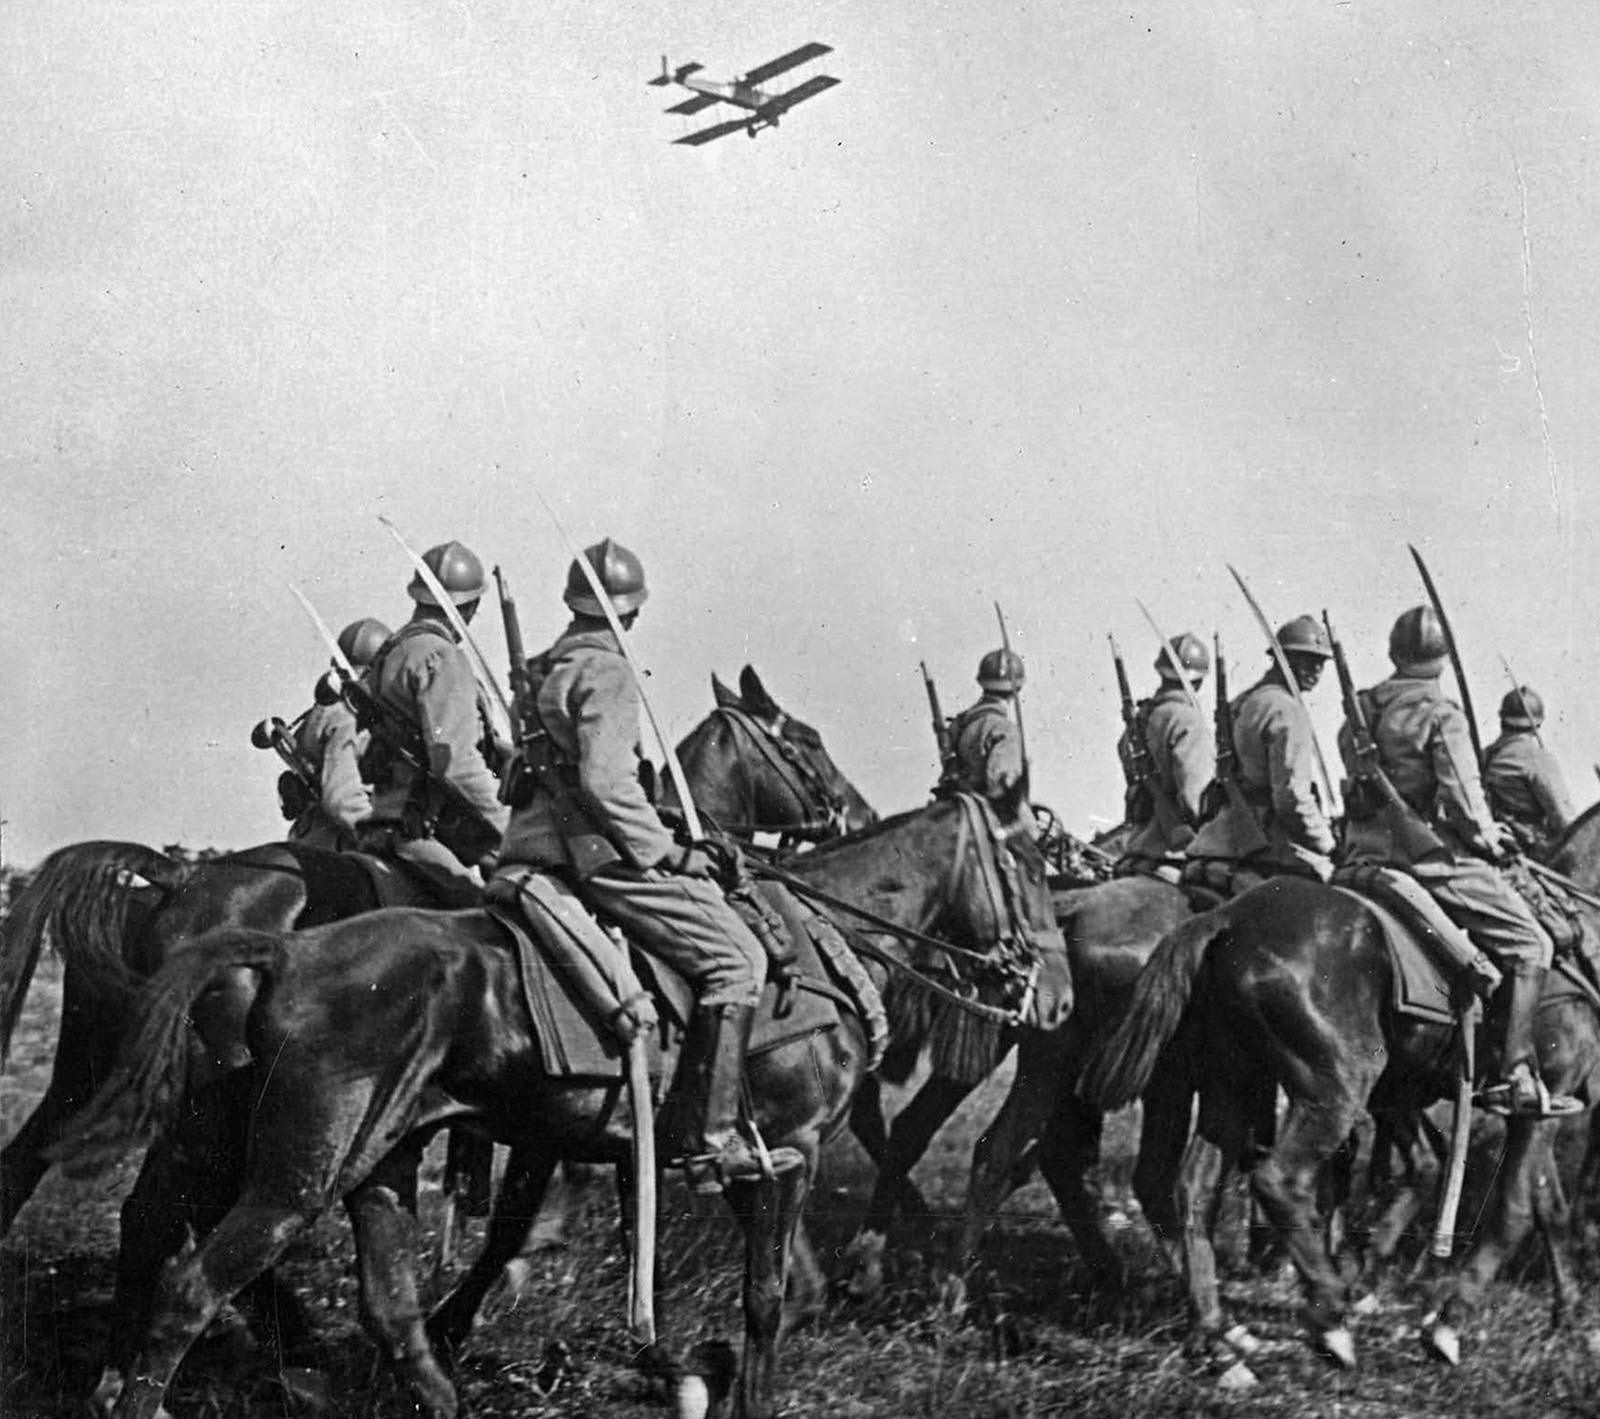 French cavalry with an aircraft overhead, 1916.  WWI was a time of incredible technological innovation and so is its remembrance.